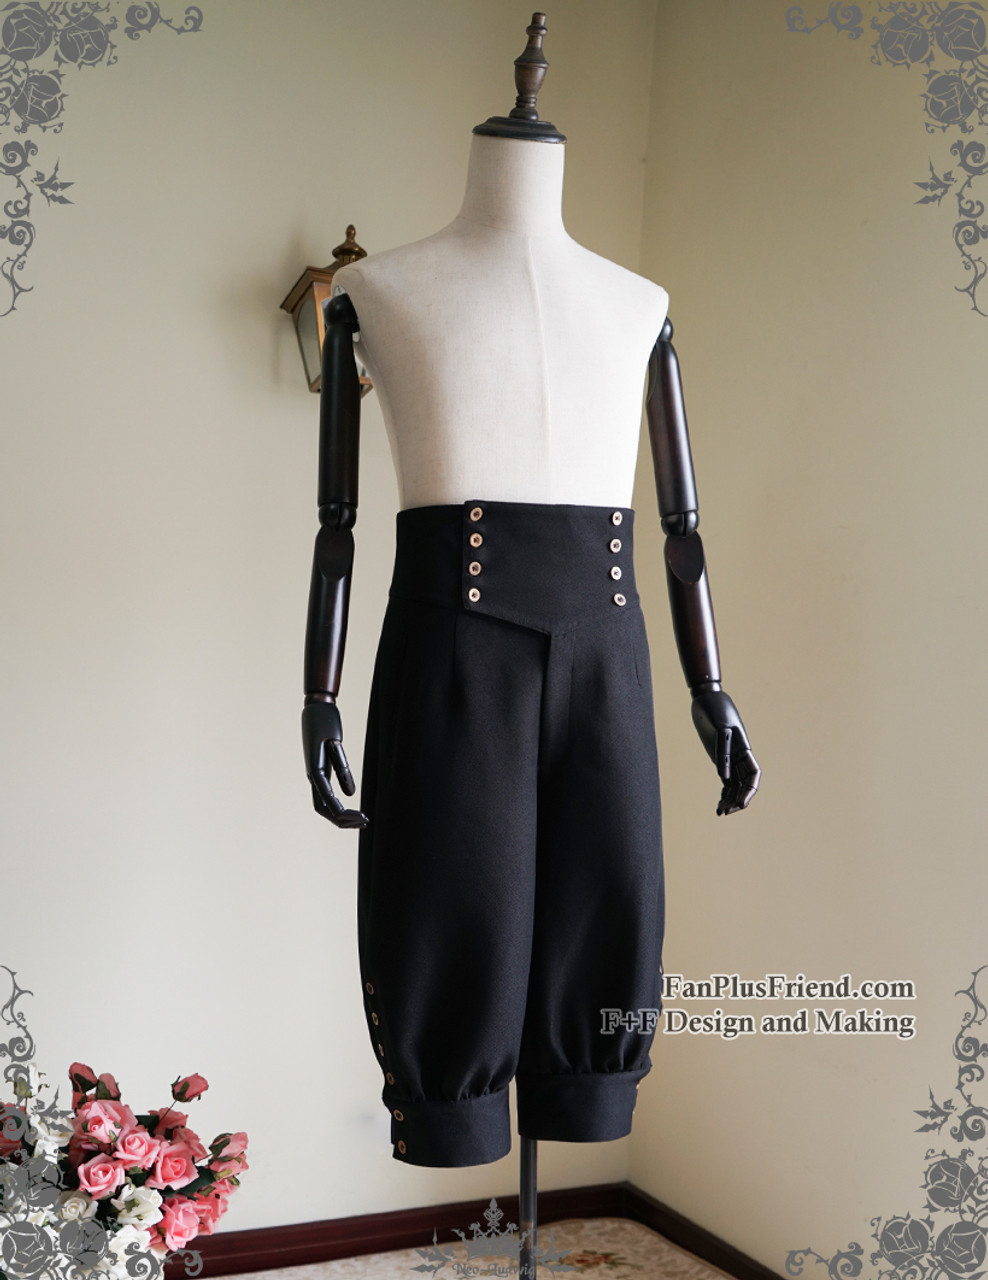 Steampunk Riding Breeches High Waisted Shorts Black Shorts GYN81UavRp